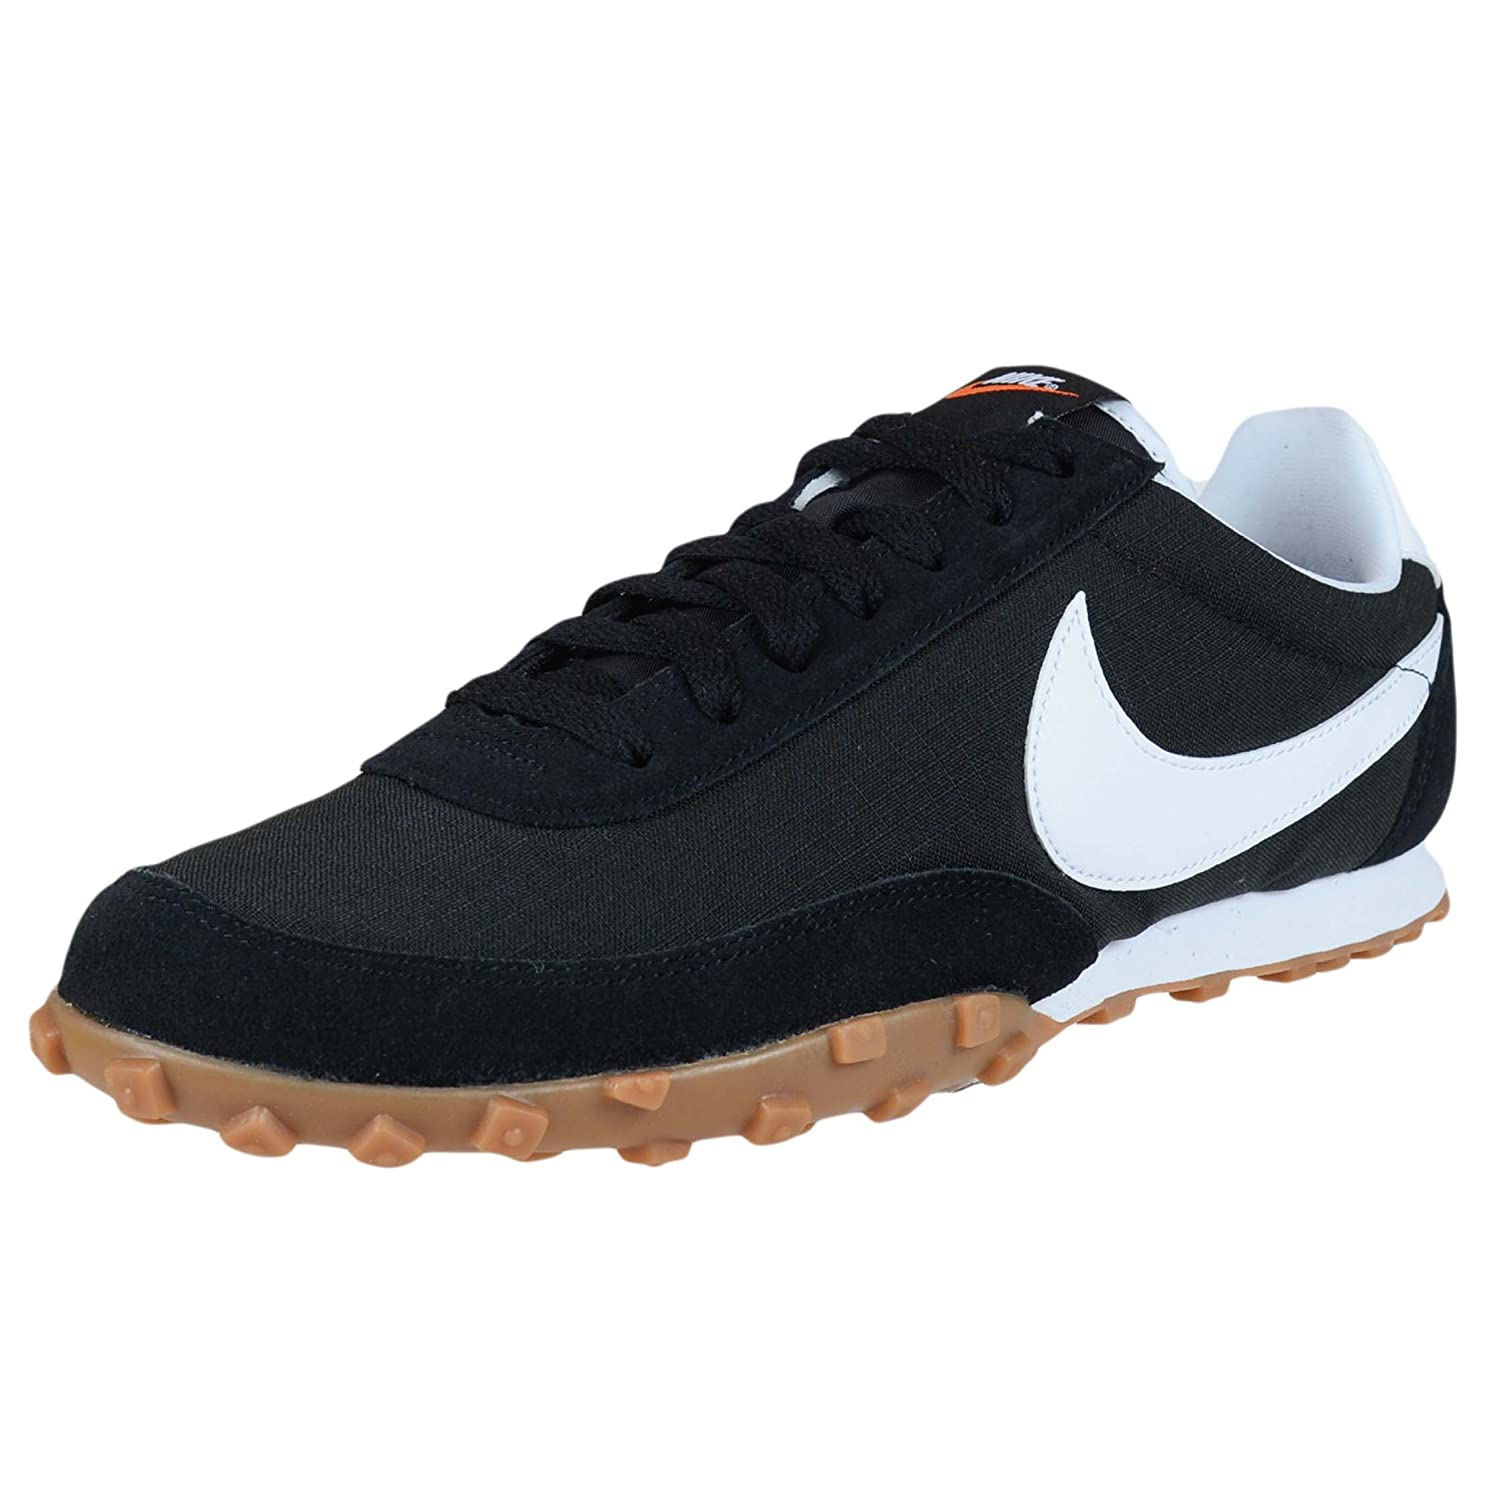 Nike Waffle Racer 17 Running Shoes (8.5 UK) Black  Buy Online at Low Prices  in India - Amazon.in a28e76949